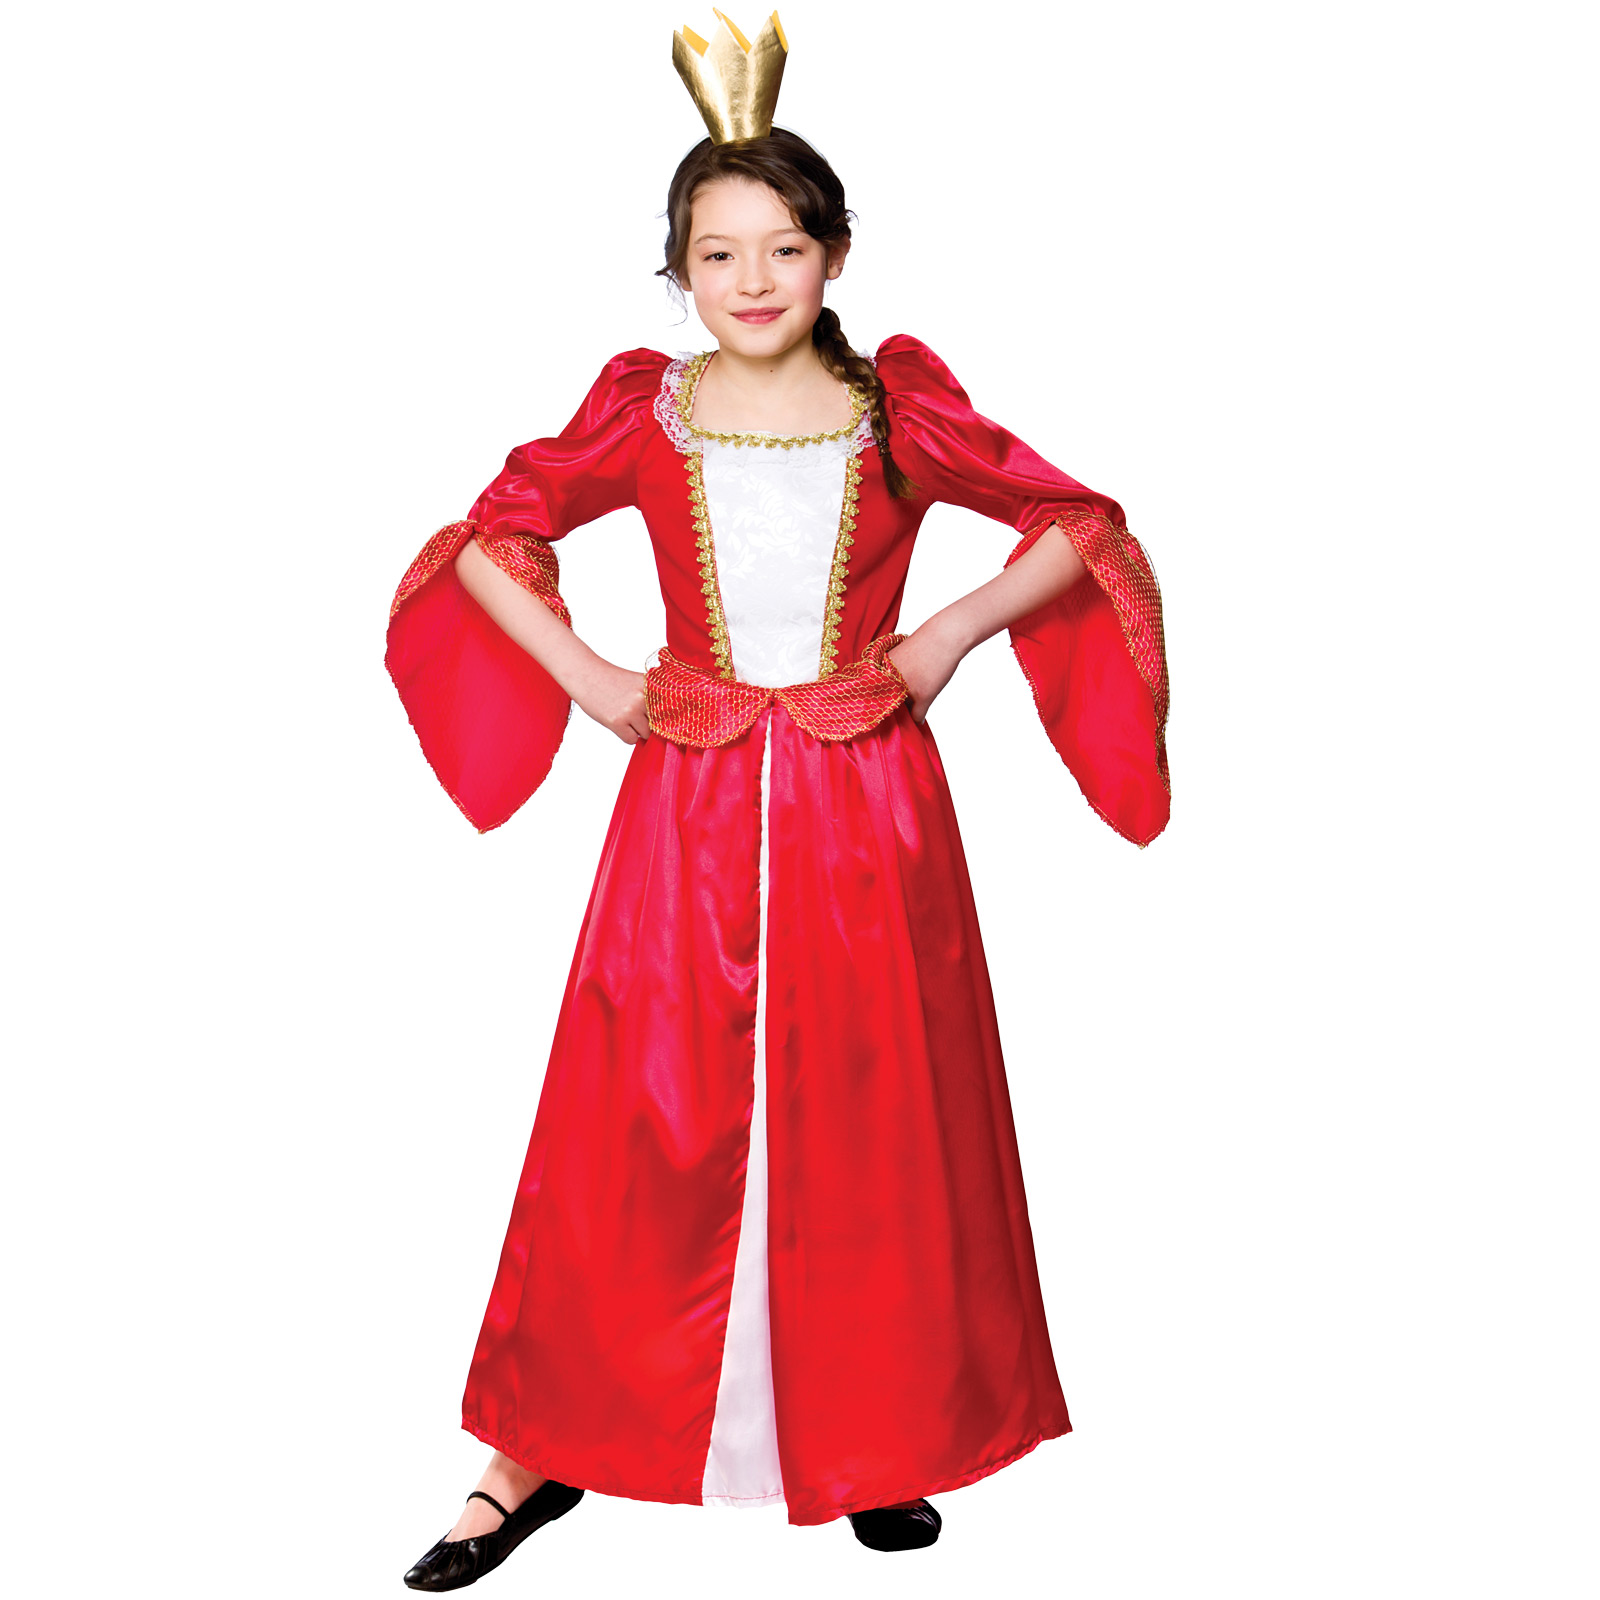 Halloween Girls Princess Fancy Dress Up Costume Outfits: Girls Red Royal Medieval Queen Costume Fancy Dress Up